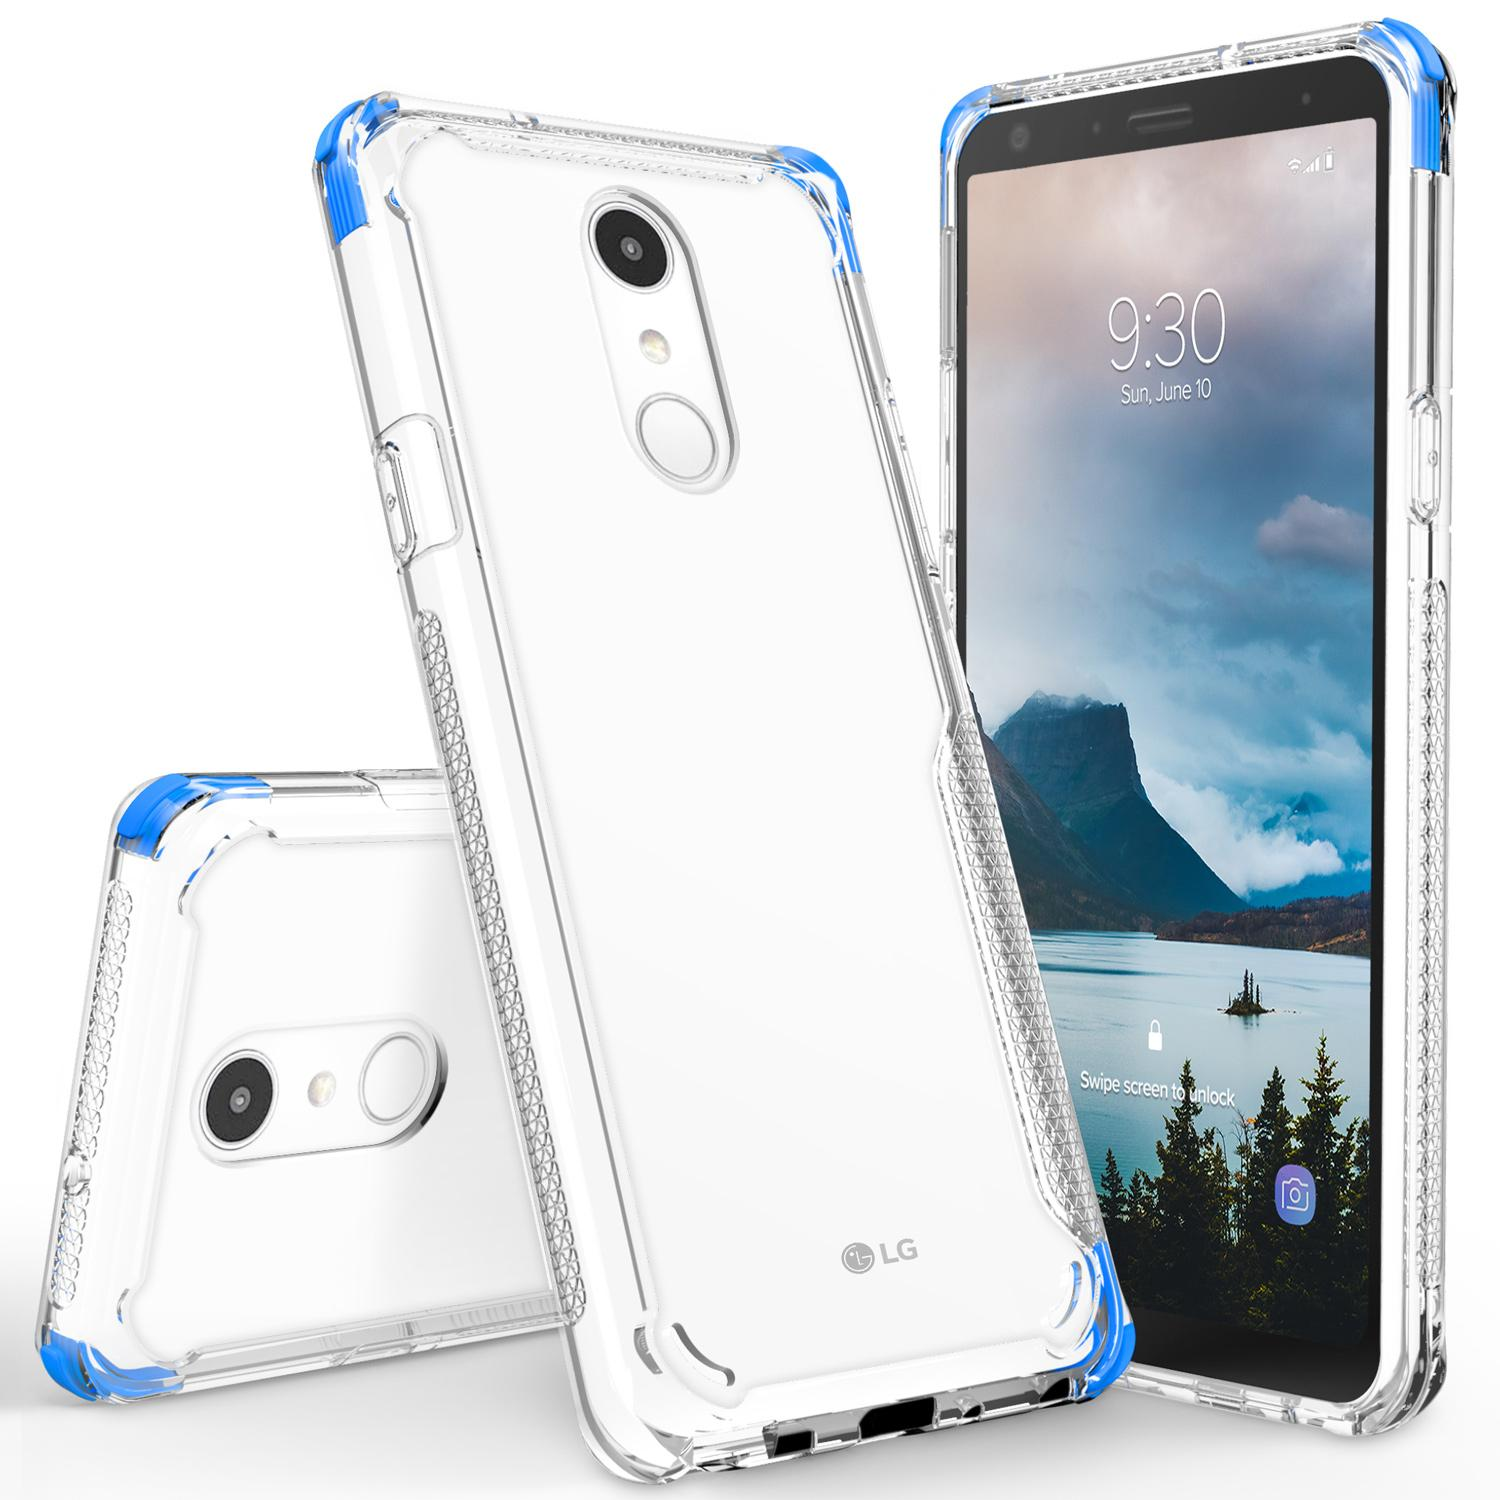 Details about CLICK SURGE Series LG Stylo 4 Case - Thin Dual Layered Cover